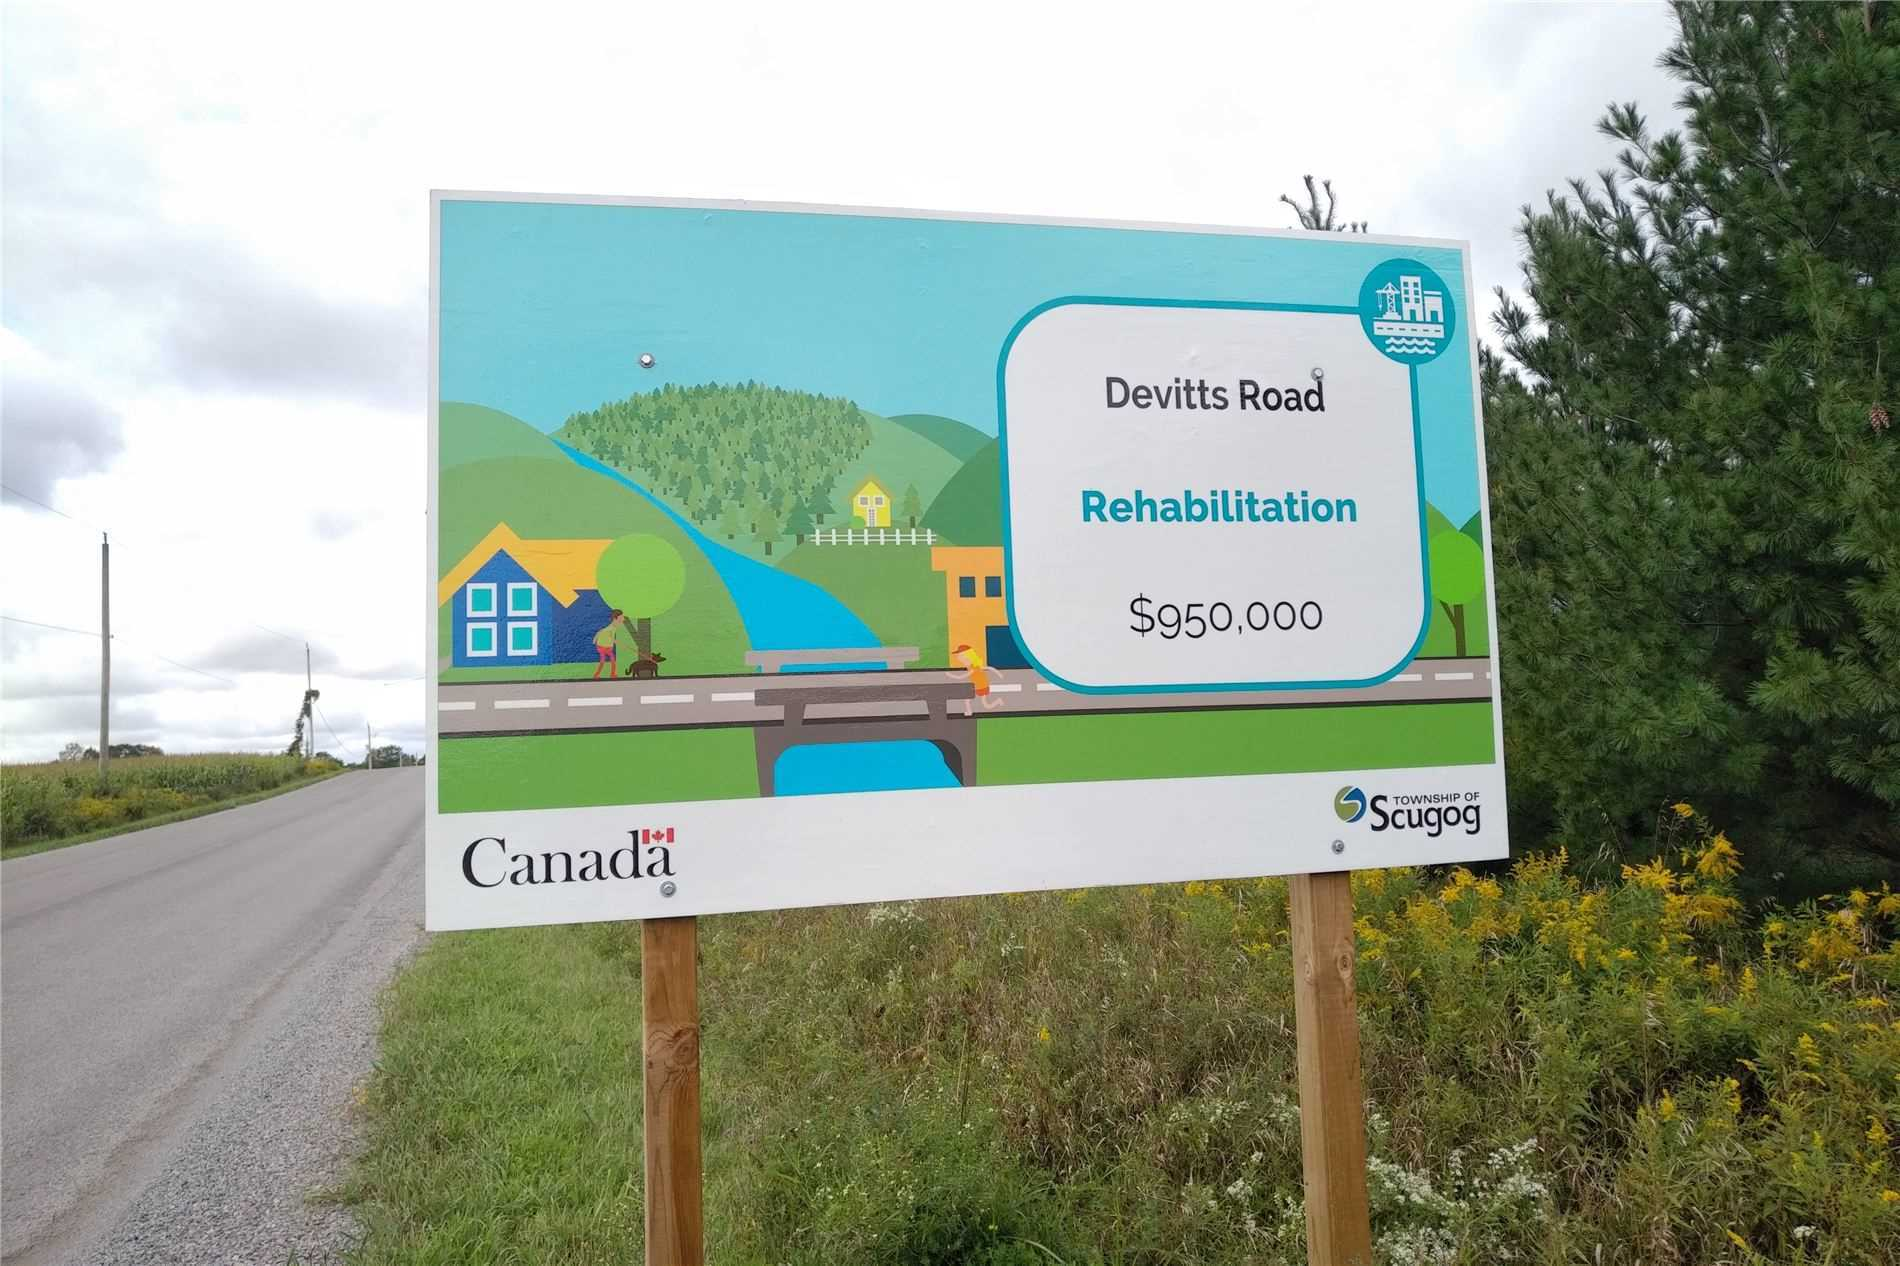 Vacant Land For Sale In Scugog , ,Vacant Land,For Sale,Devitts